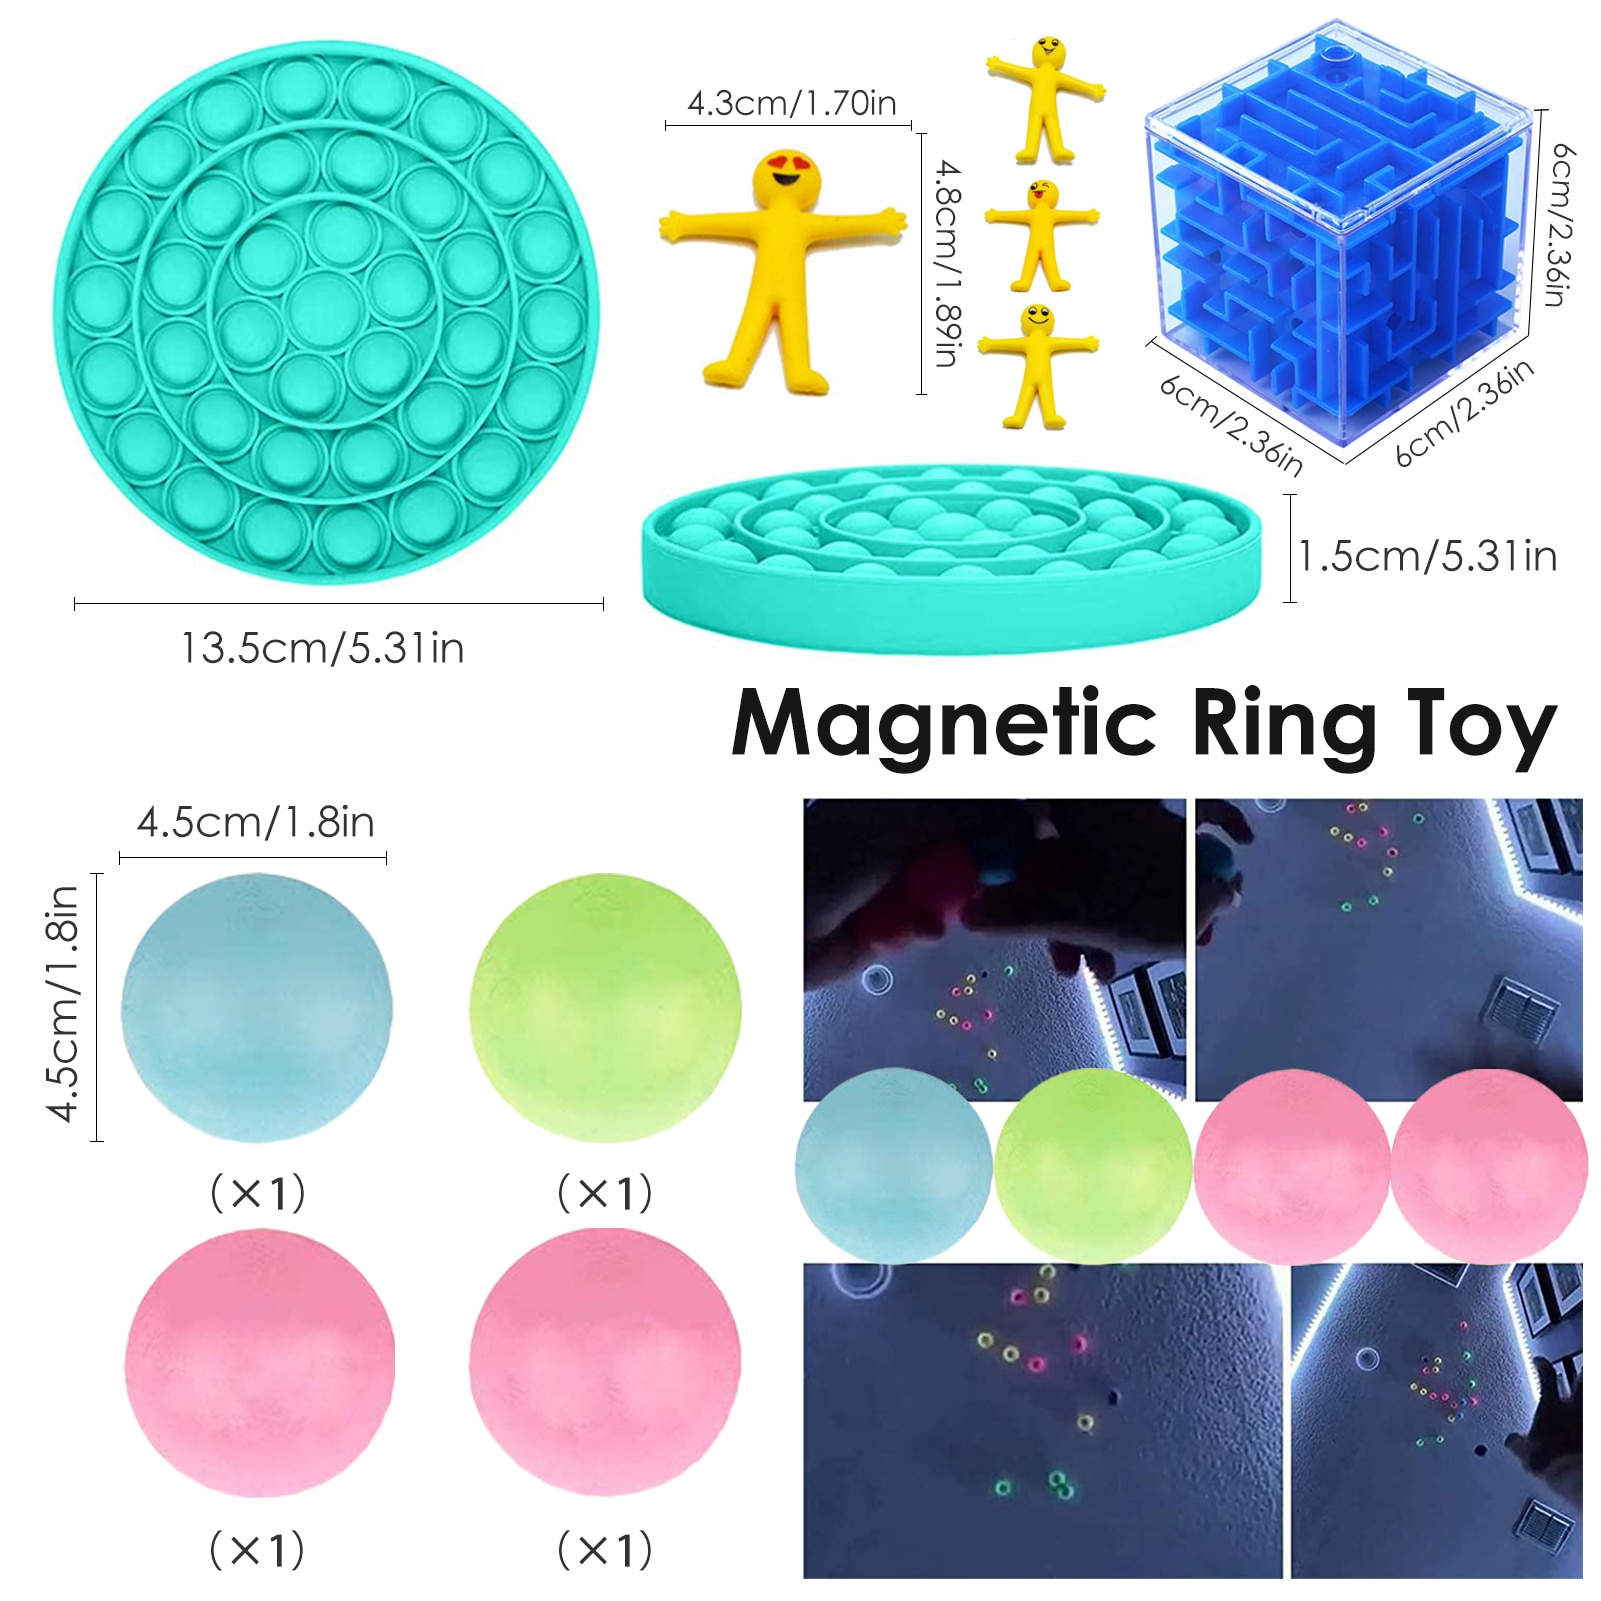 Sensory Fidget Toys Set Stress Reliever Wall Stick Ball Stretchy Strings Mesh ADHD Marble Ball Autism Anxiet Toys For Kids Adult enlarge